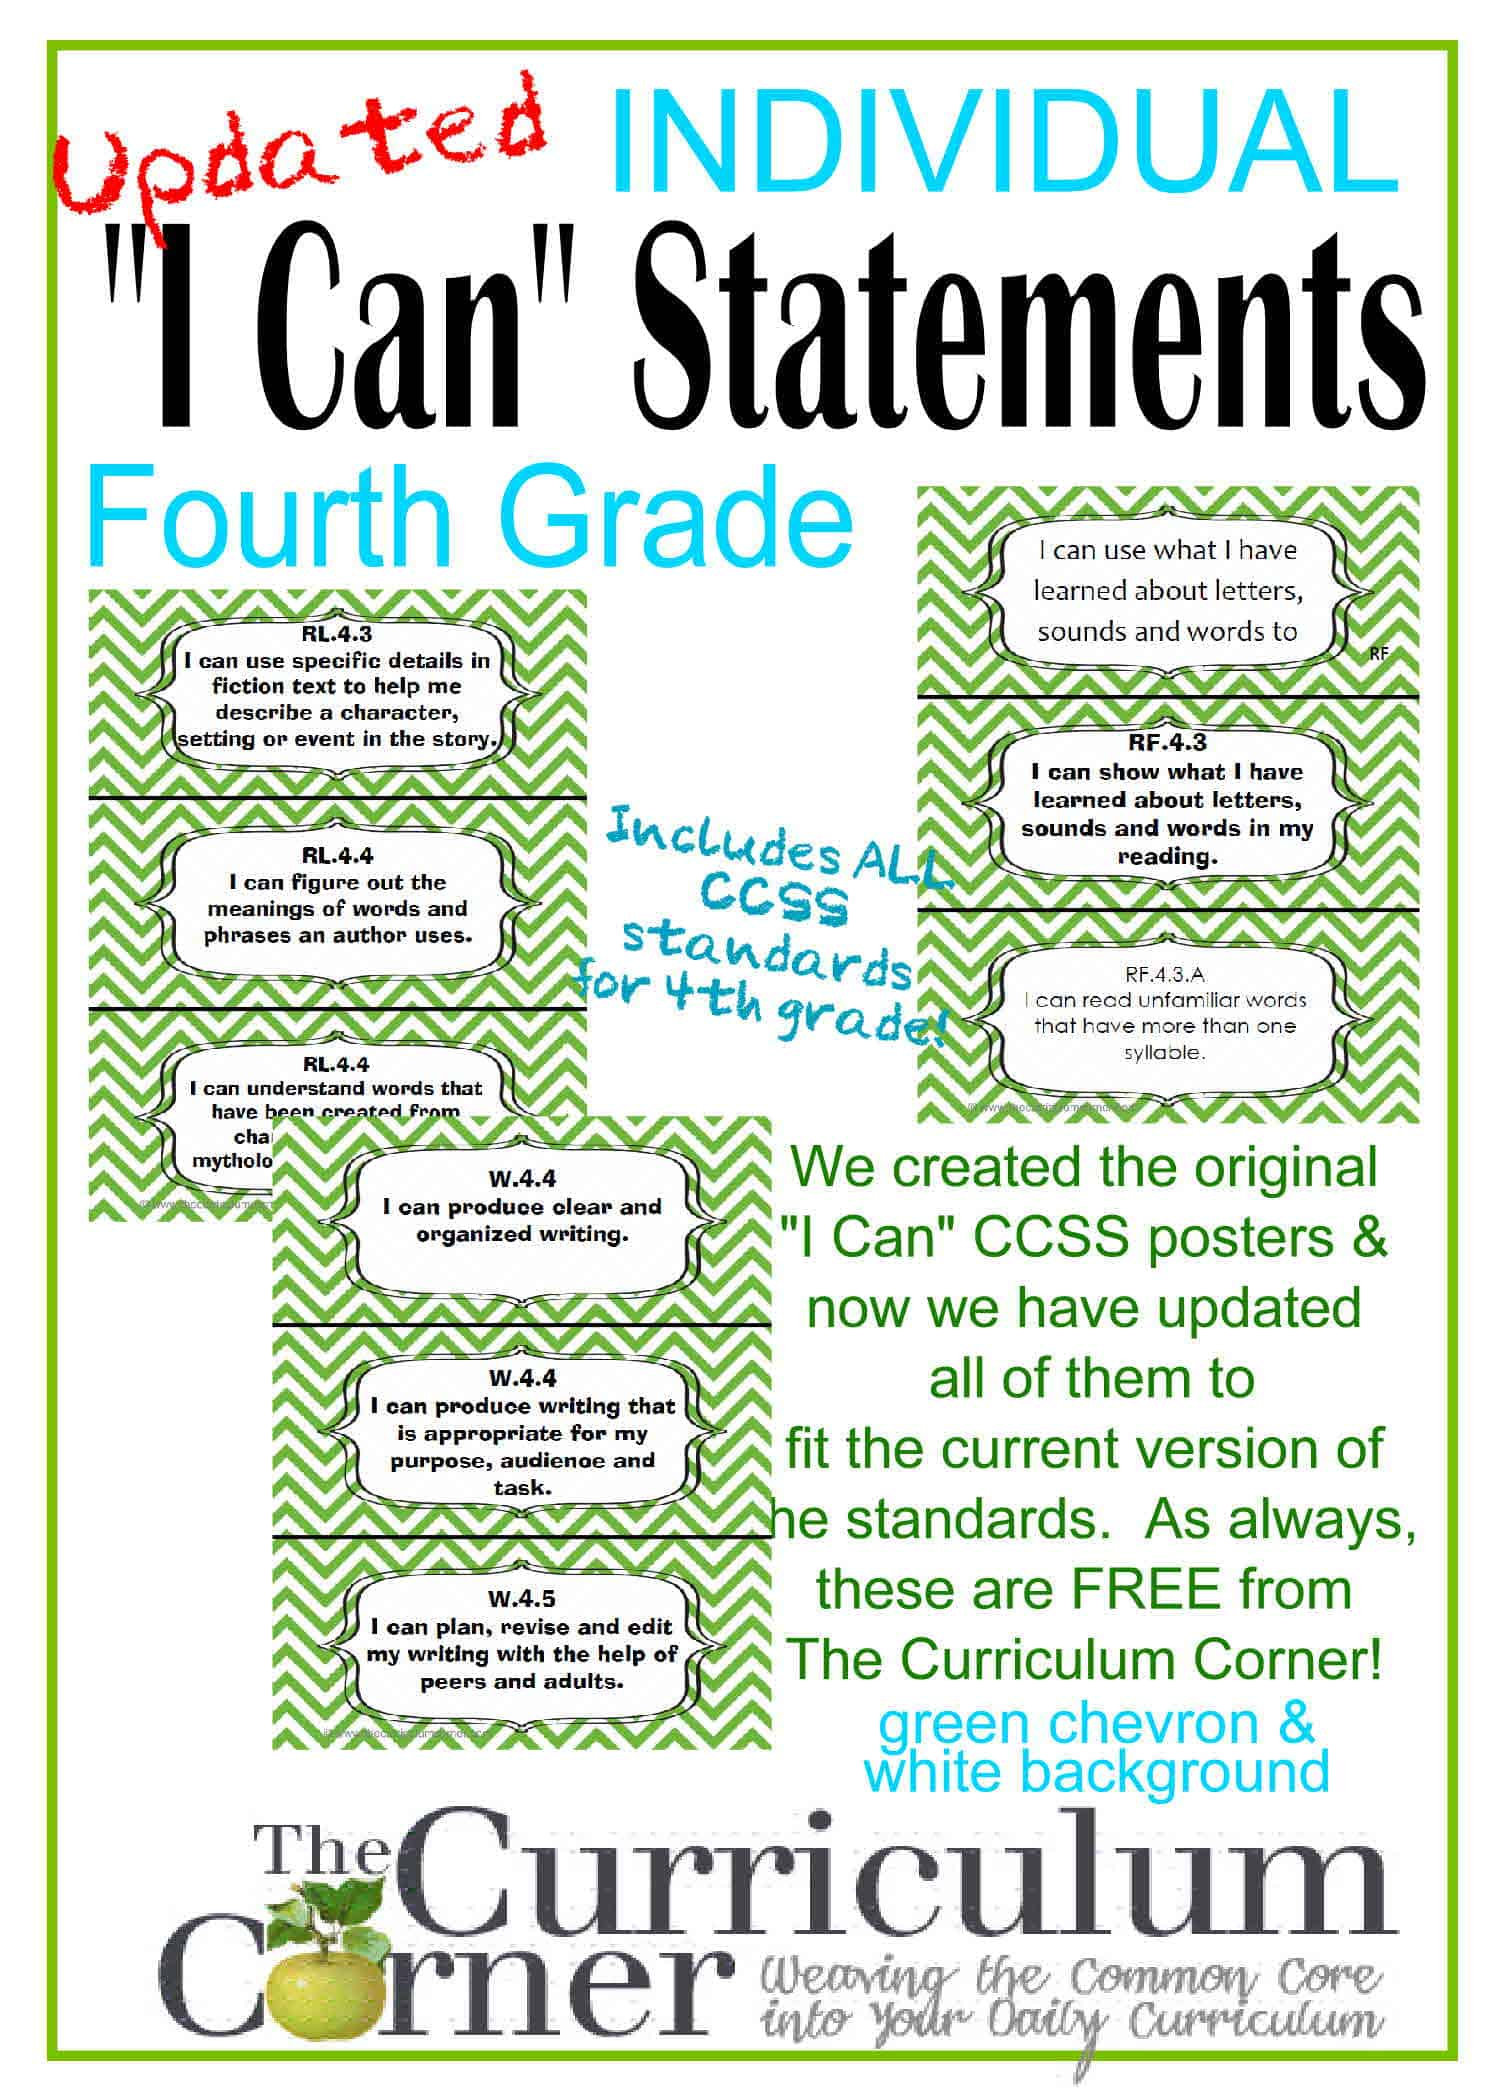 Individual I Can Statements for CCSS 4th Grade in Green Chevron